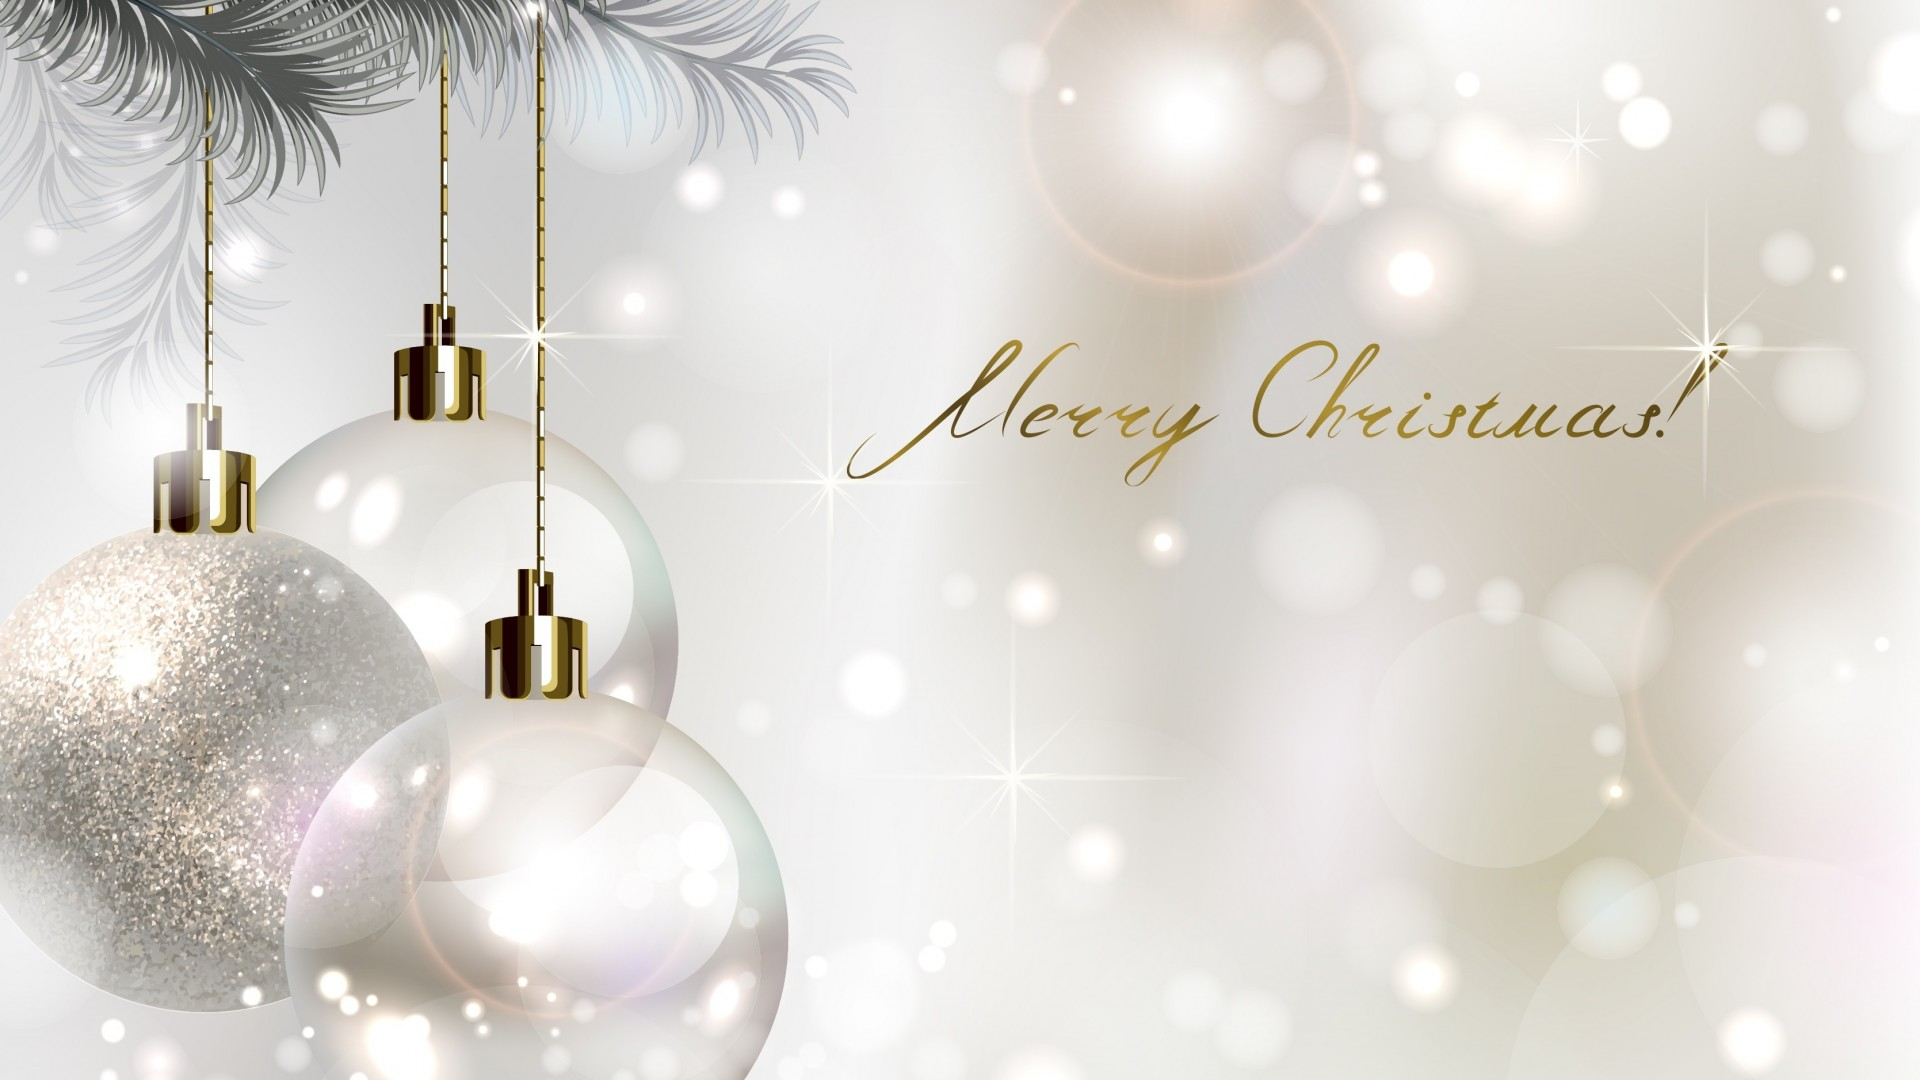 christmas-wallpaper-full-hd-For-Desktop-Wallpaper.jpg